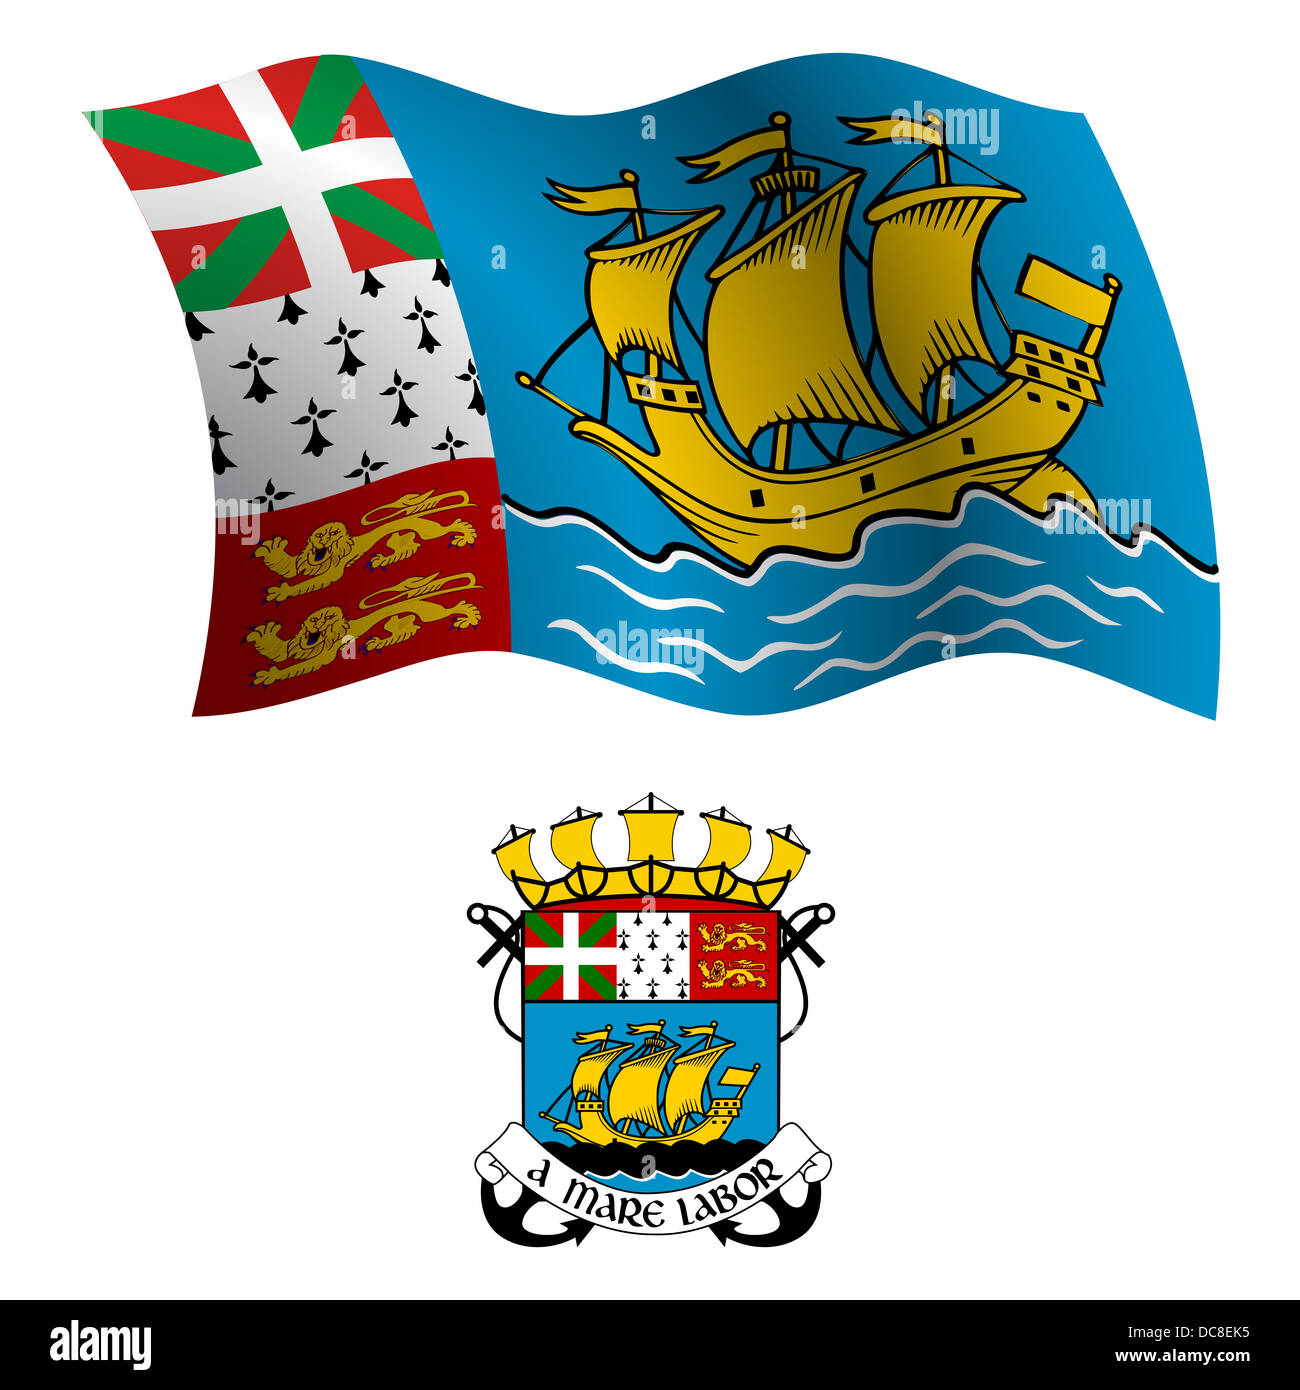 saint pierre and miquelon wavy flag and coat of arm against white background, vector art illustration, image has - Stock Image